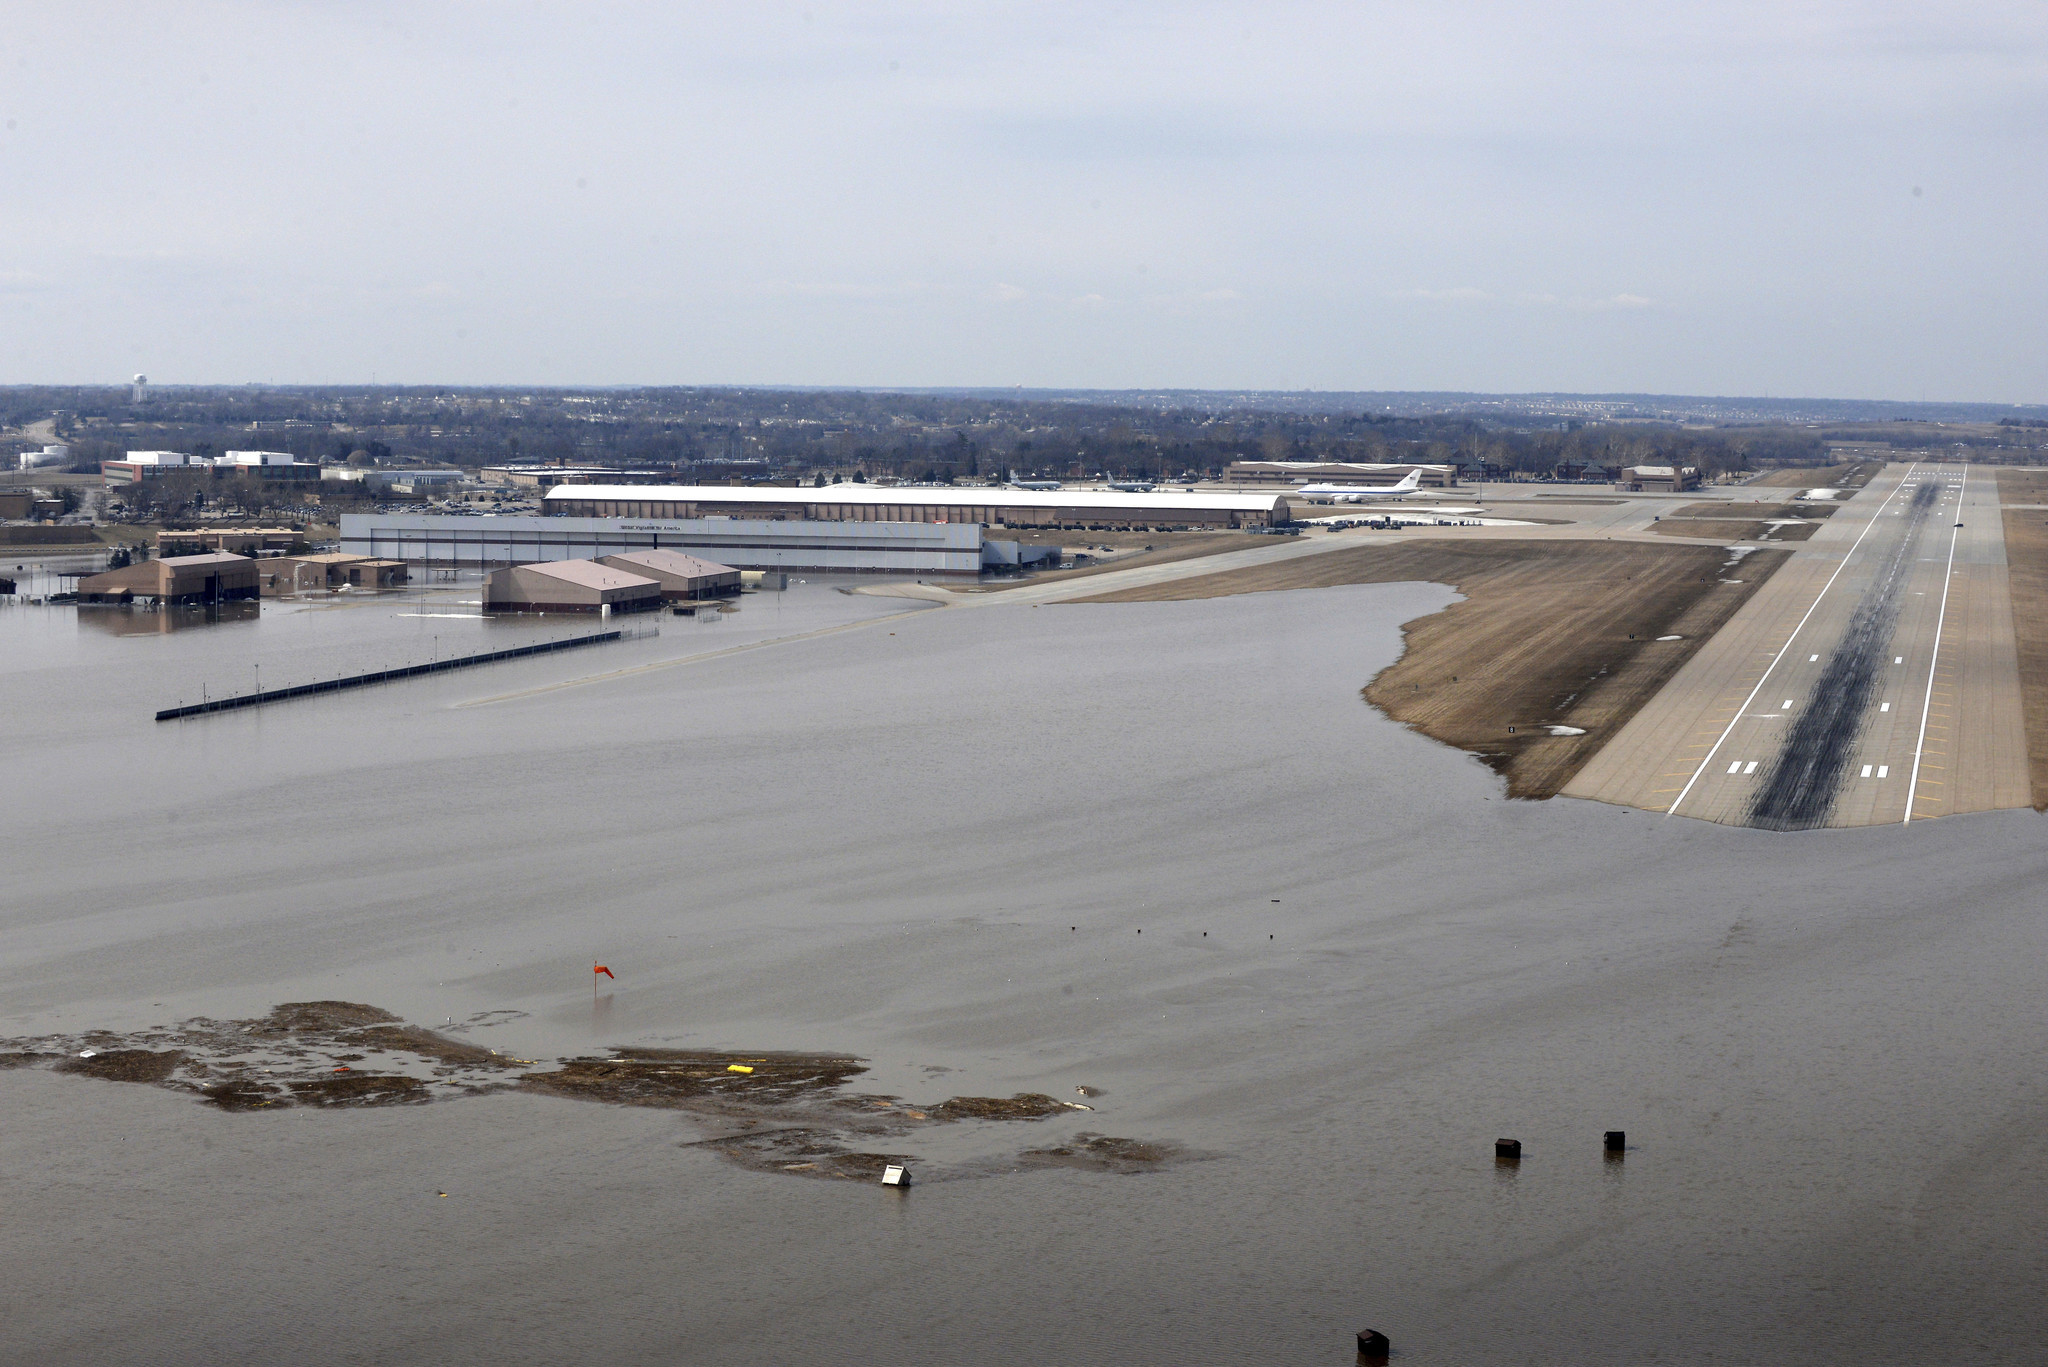 Midwest flooding highlights national security risk posed by climate change